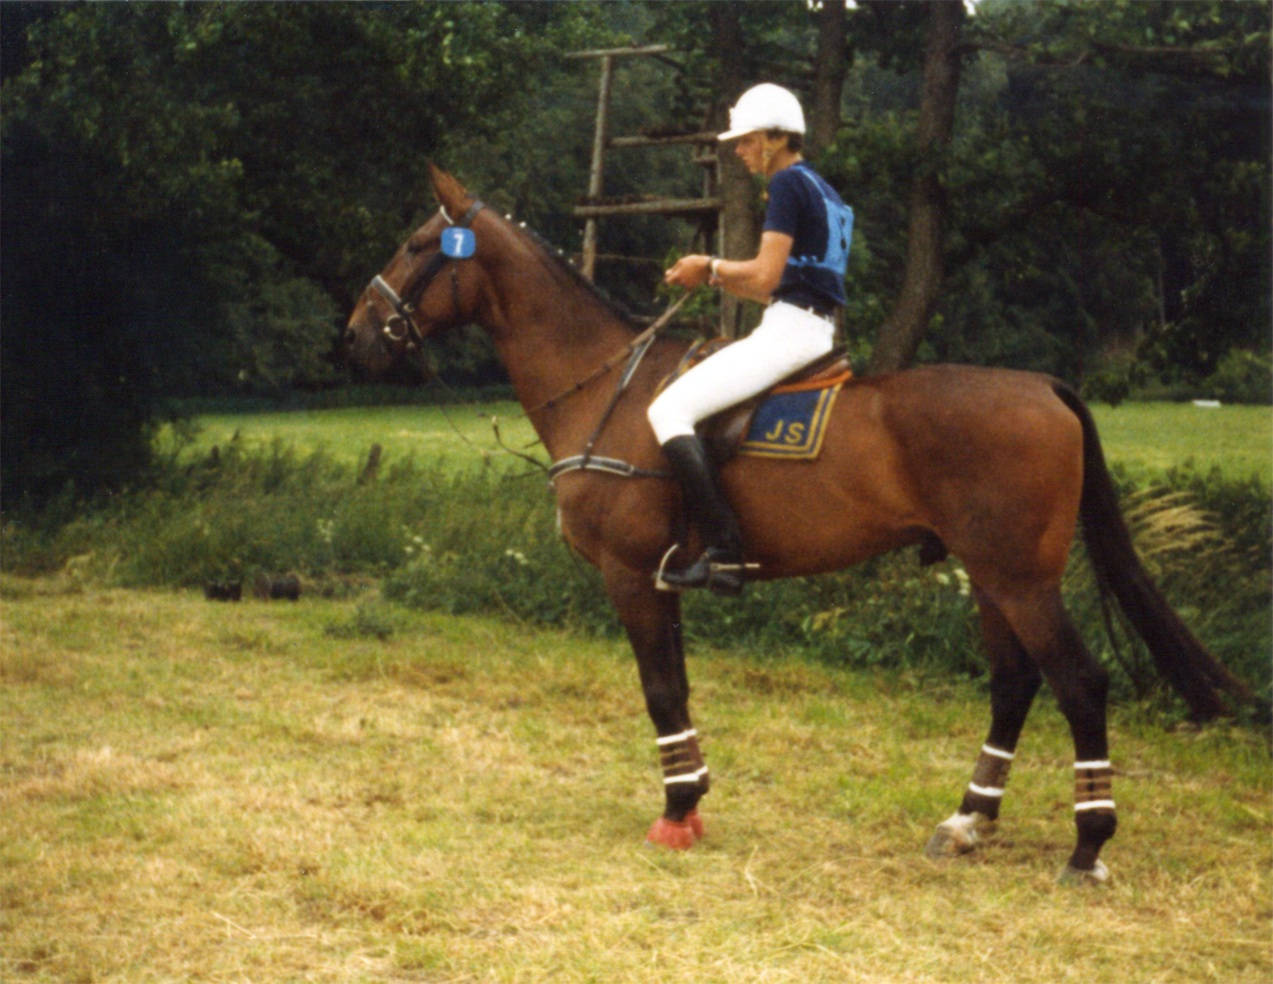 Jochen Schleese - Eventing on 'Pirat'